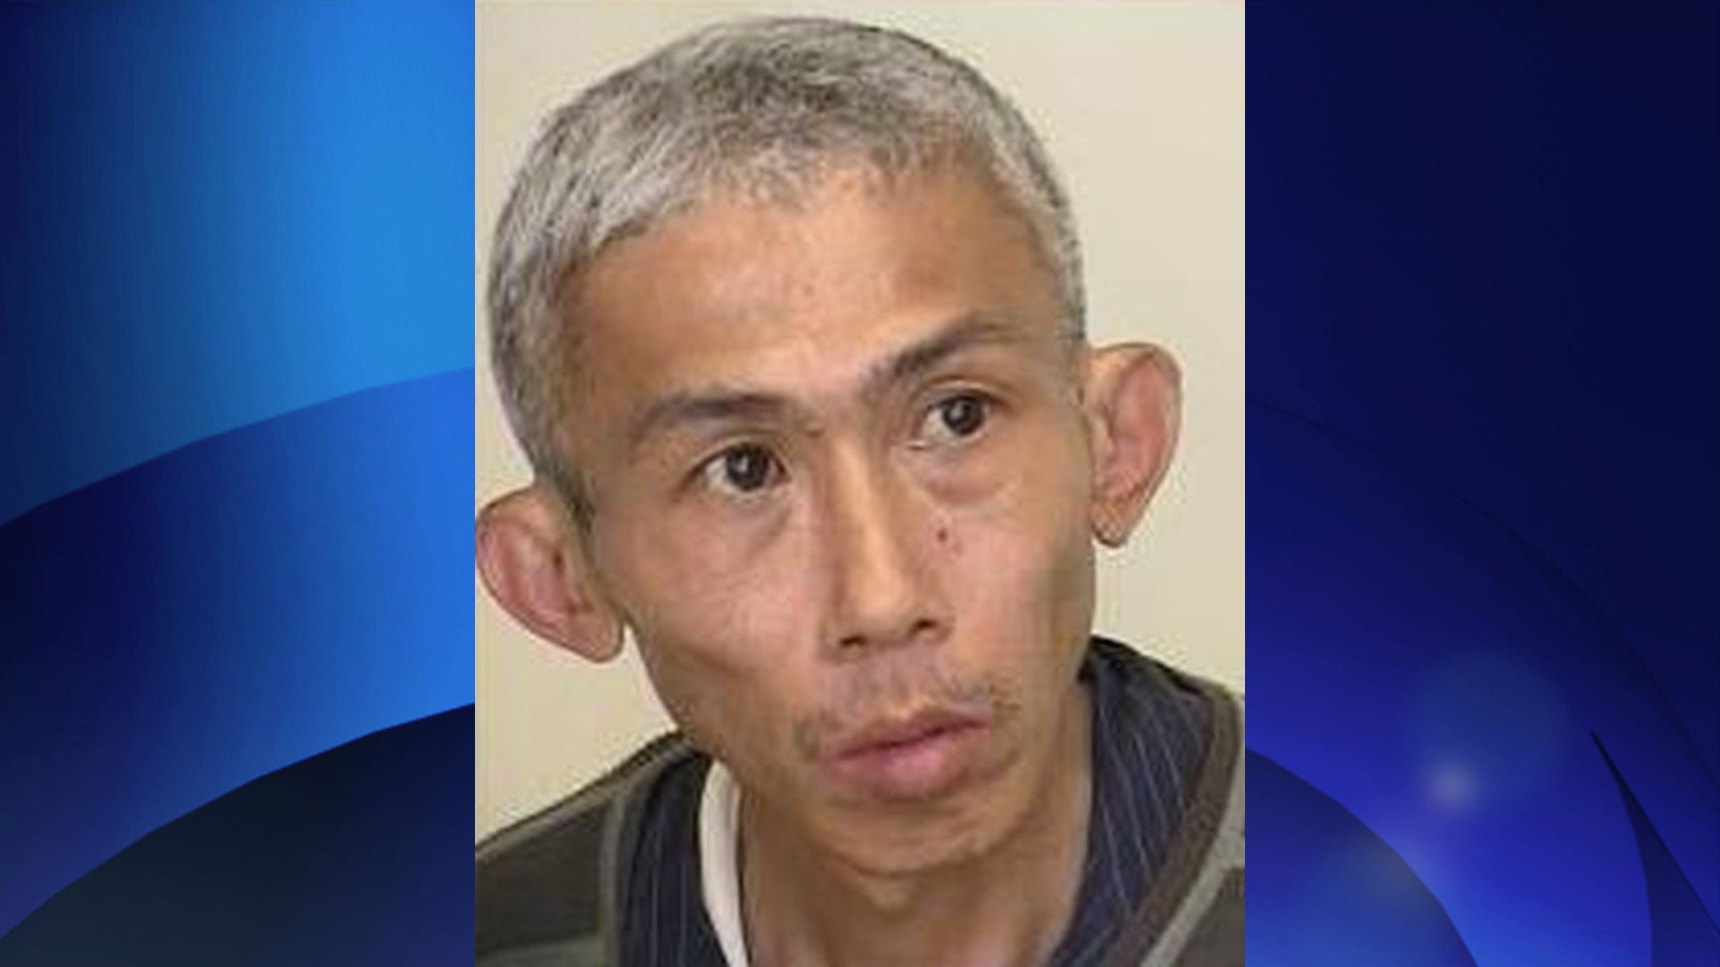 Vo Quang Thai, 53, was last seen on Sept. 11, 2016. HANDOUT/Toronto Police Service